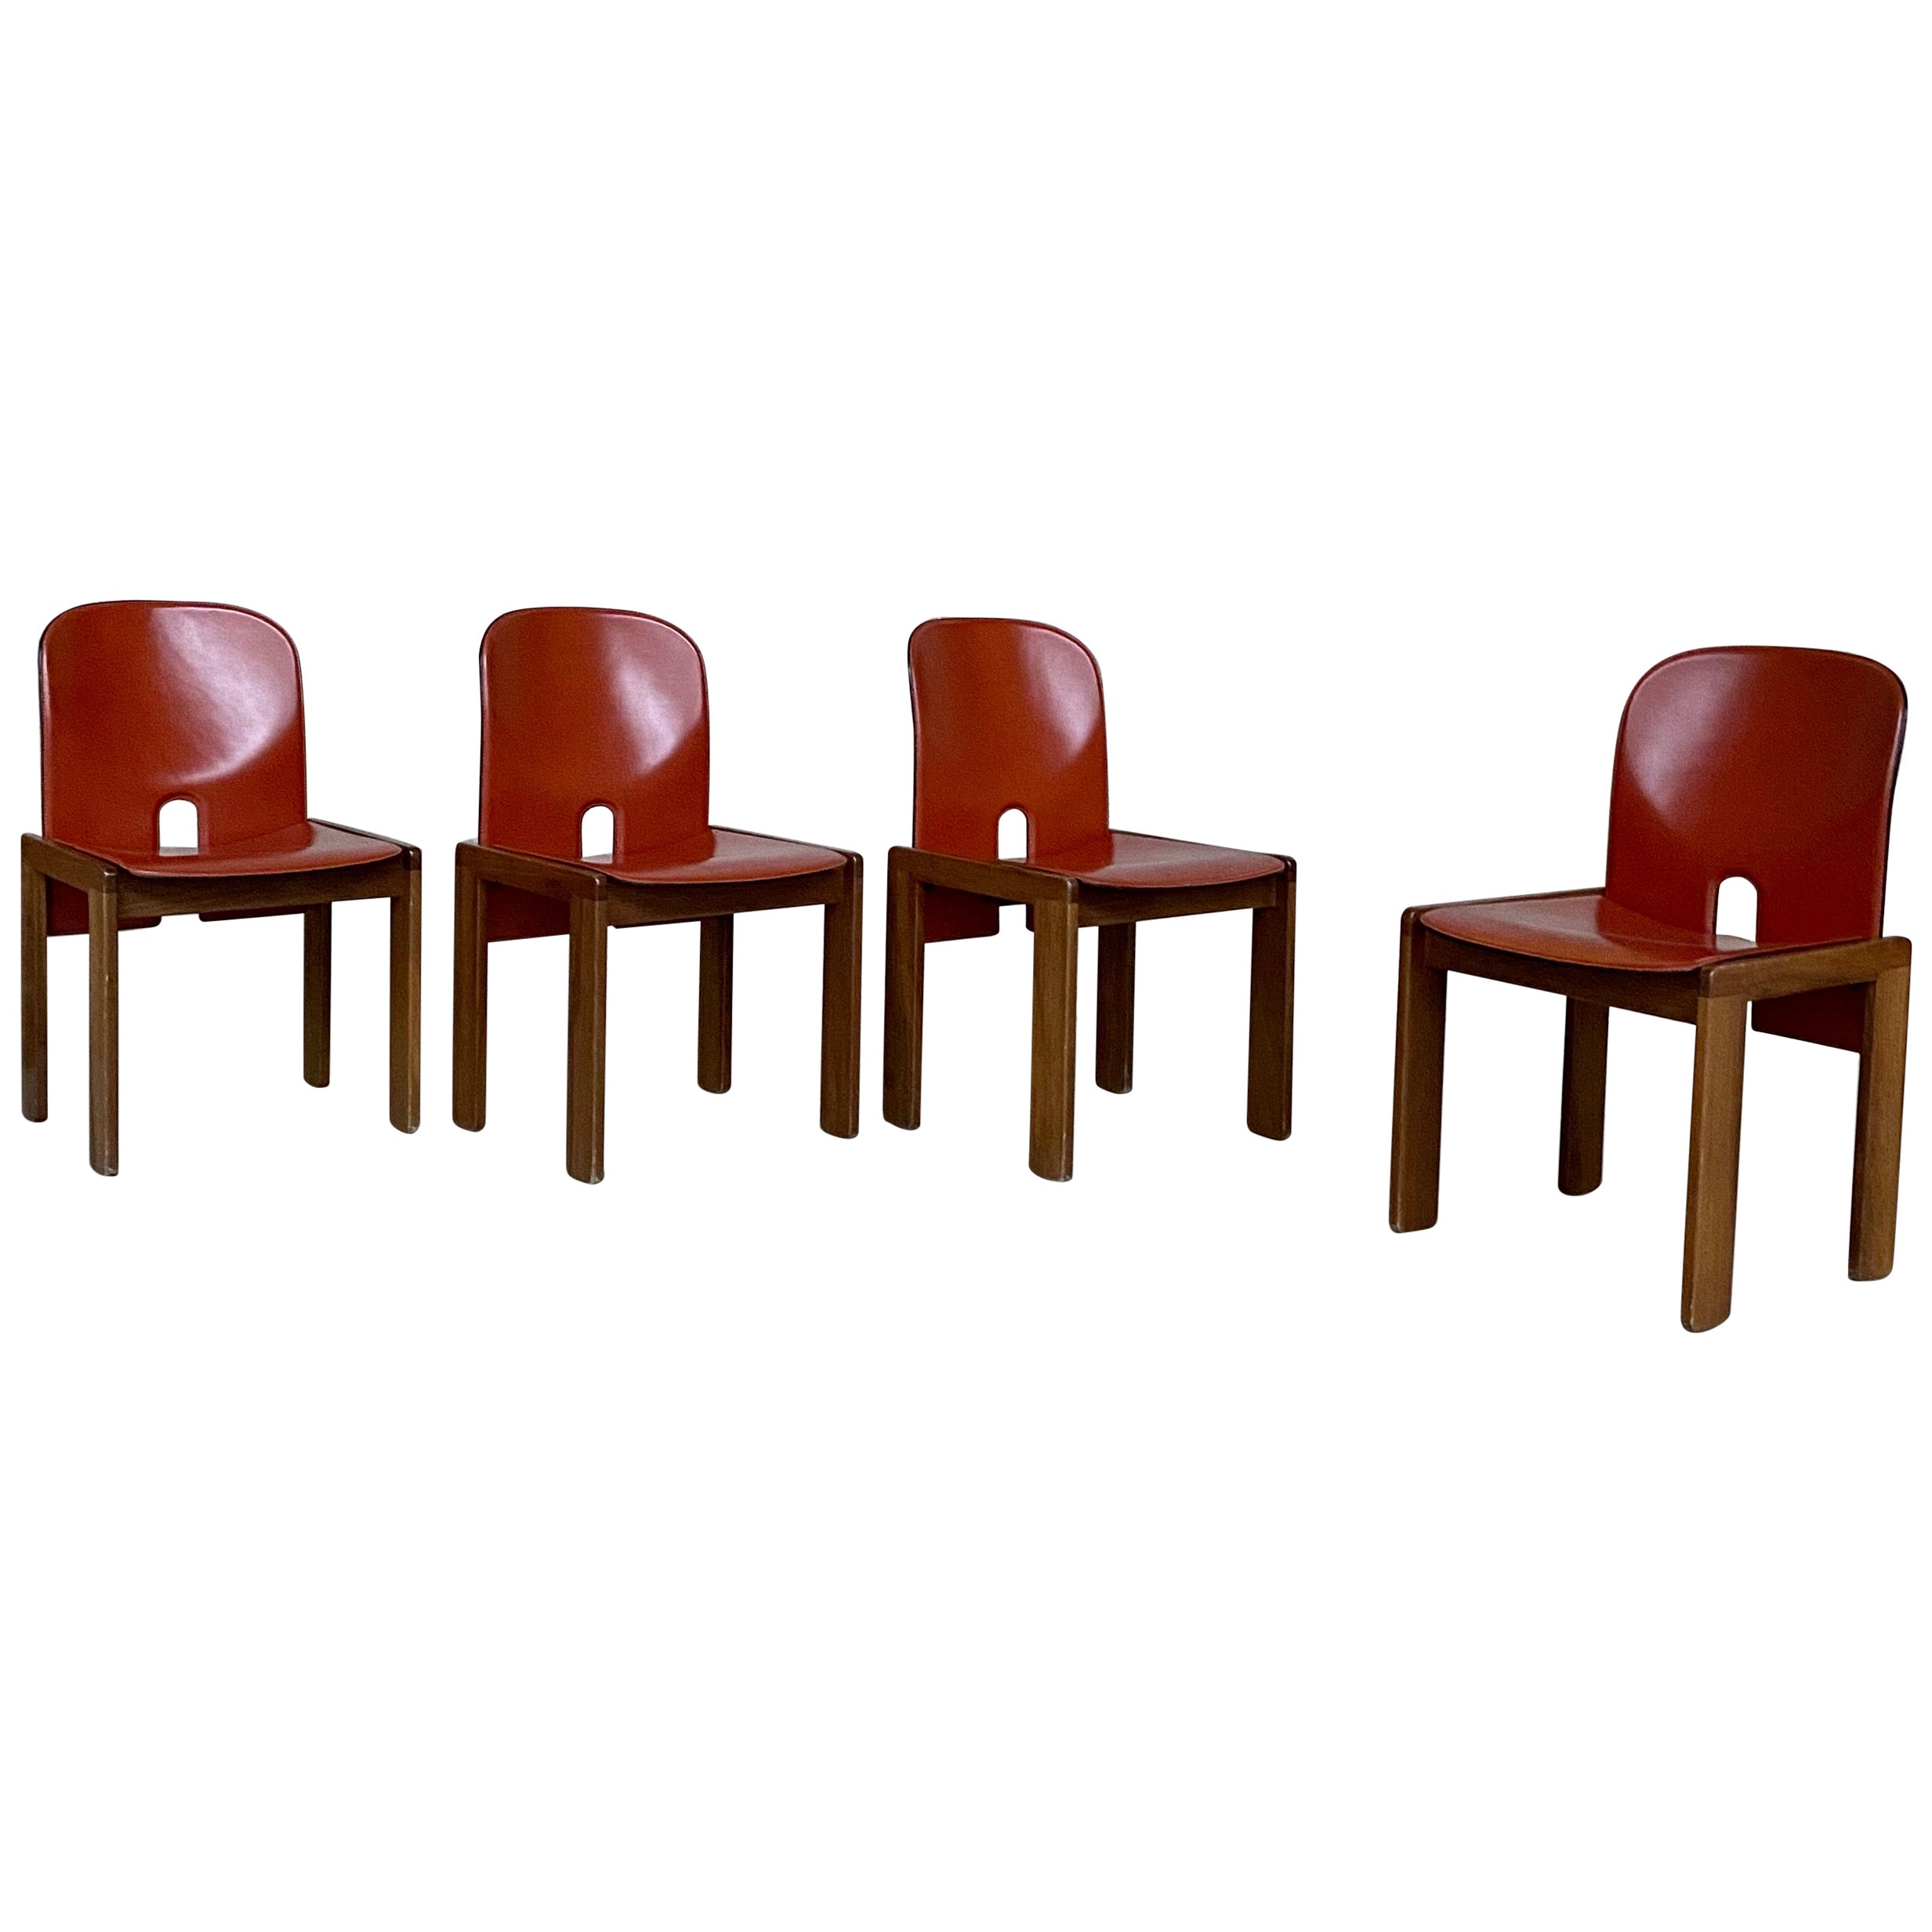 "Afra & Tobia Scarpa ""121"" Dining Chairs for Cassina, 1968, Set of 4"